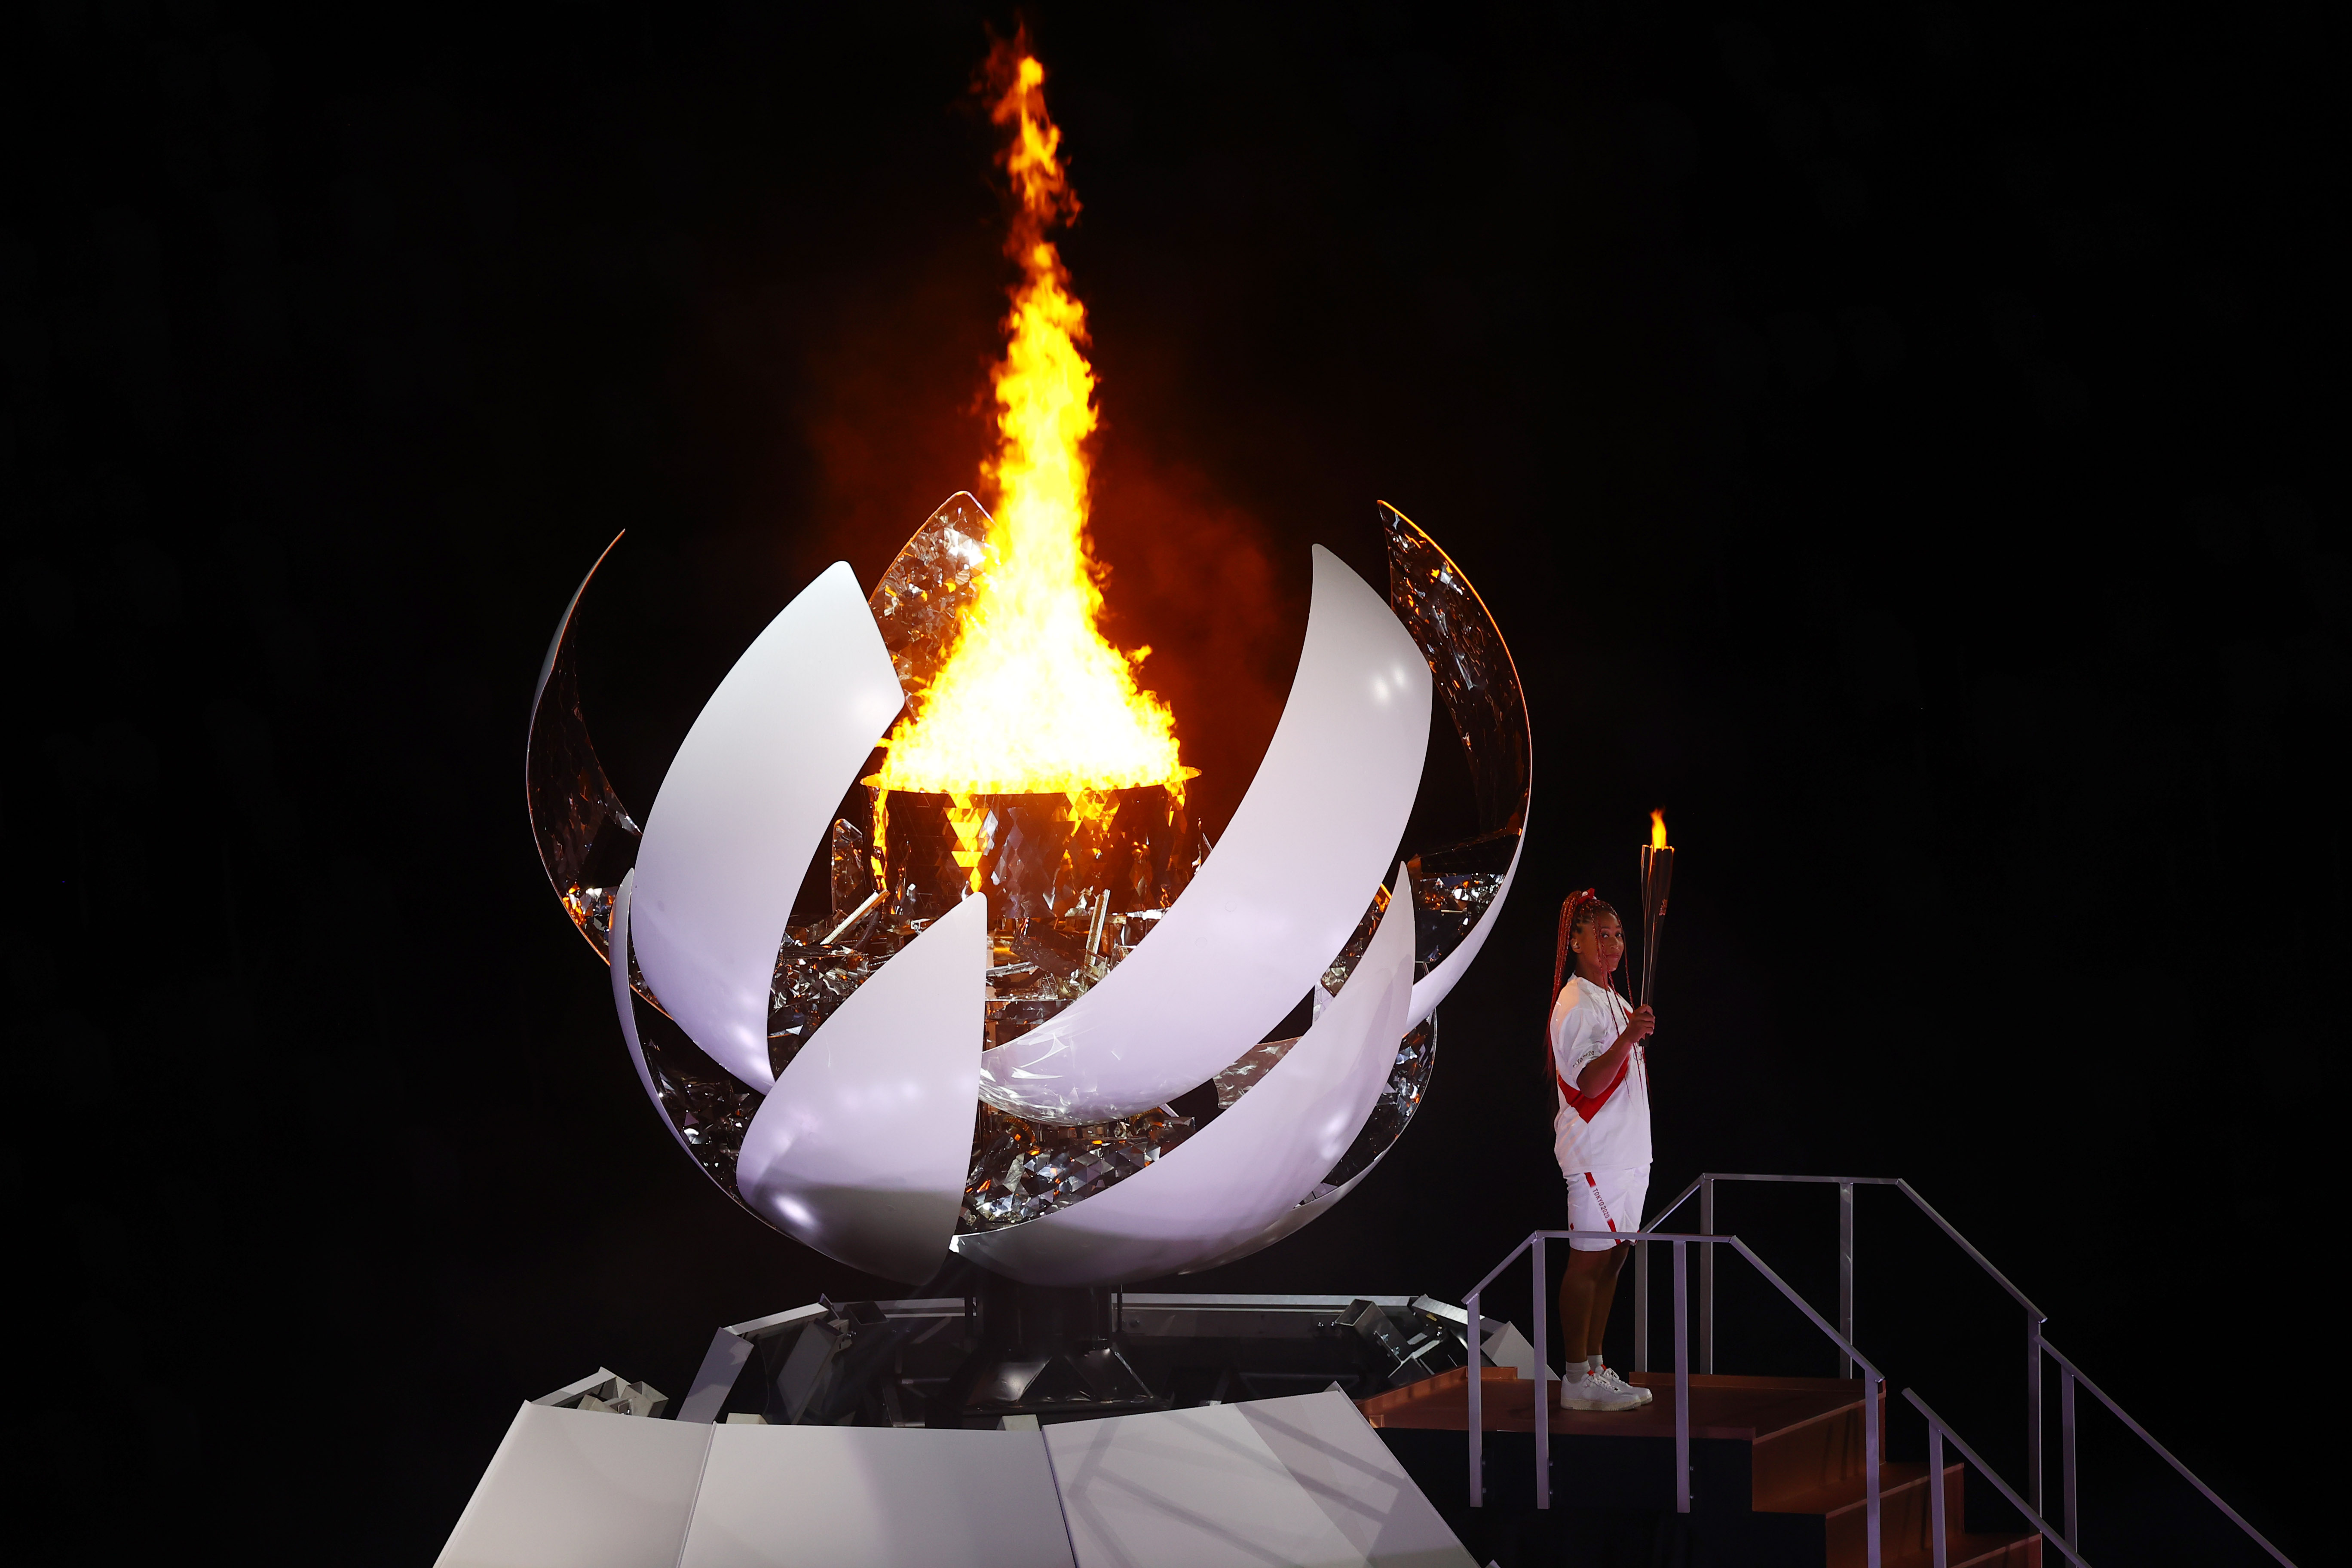 Tokyo 2020 Olympics - The Tokyo 2020 Olympics Opening Ceremony - Olympic Stadium, Tokyo, Japan - July 23, 2021. Naomi Osaka of Japan holds the Olympic torch after lighting the Olympic cauldron at the opening ceremony REUTERS/Mike Blake